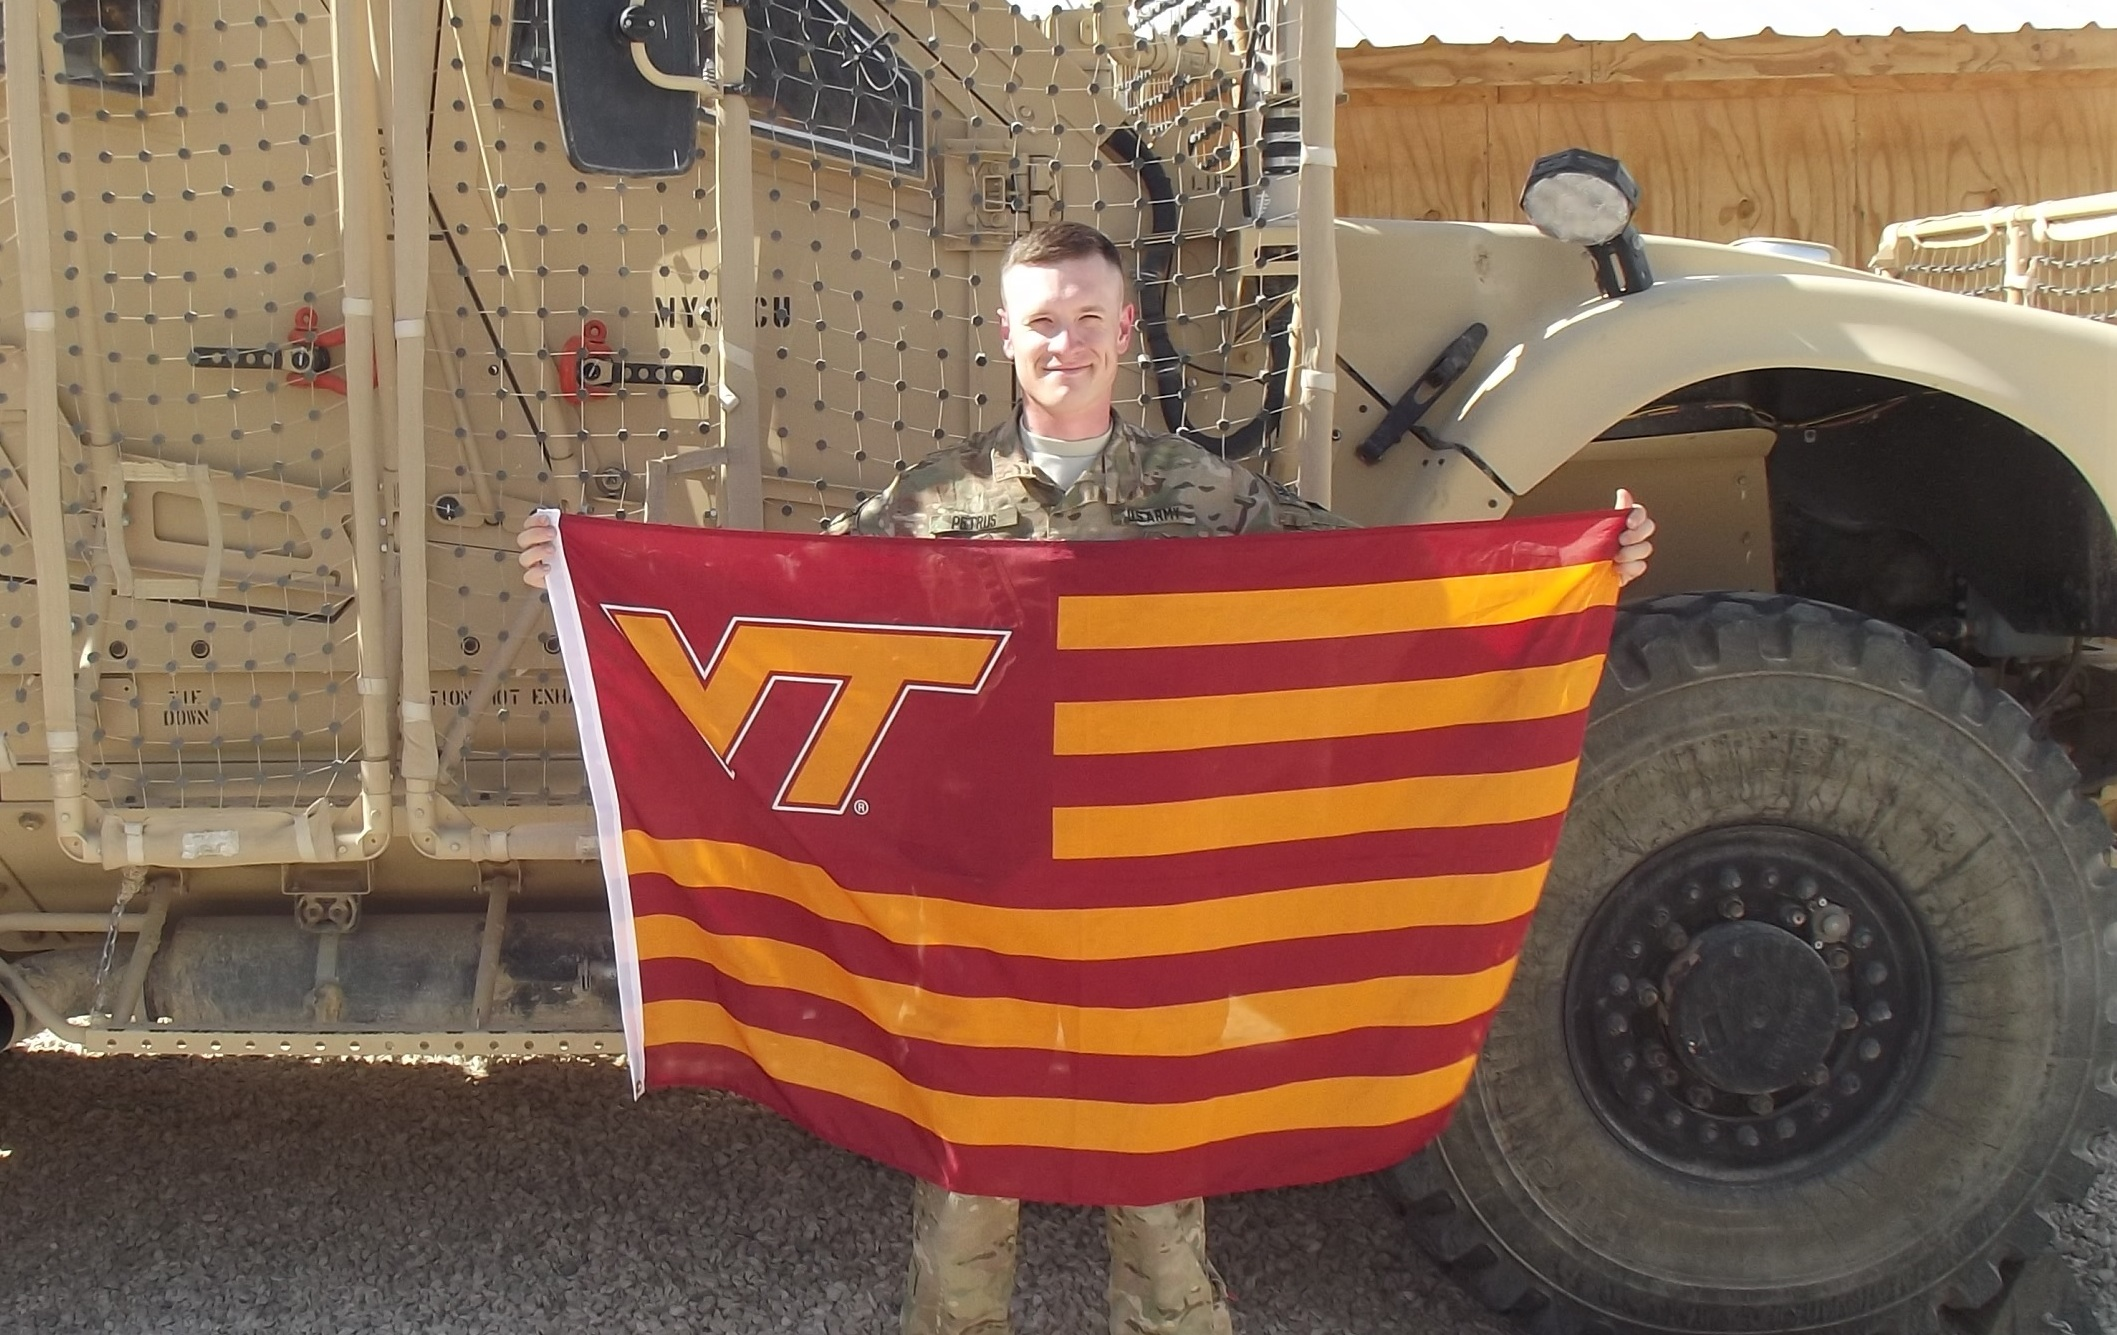 Capt. Joshua Petrus, U.S. Army, Virginia Tech Corps of Cadets Class of 2008 in Afghanistan.